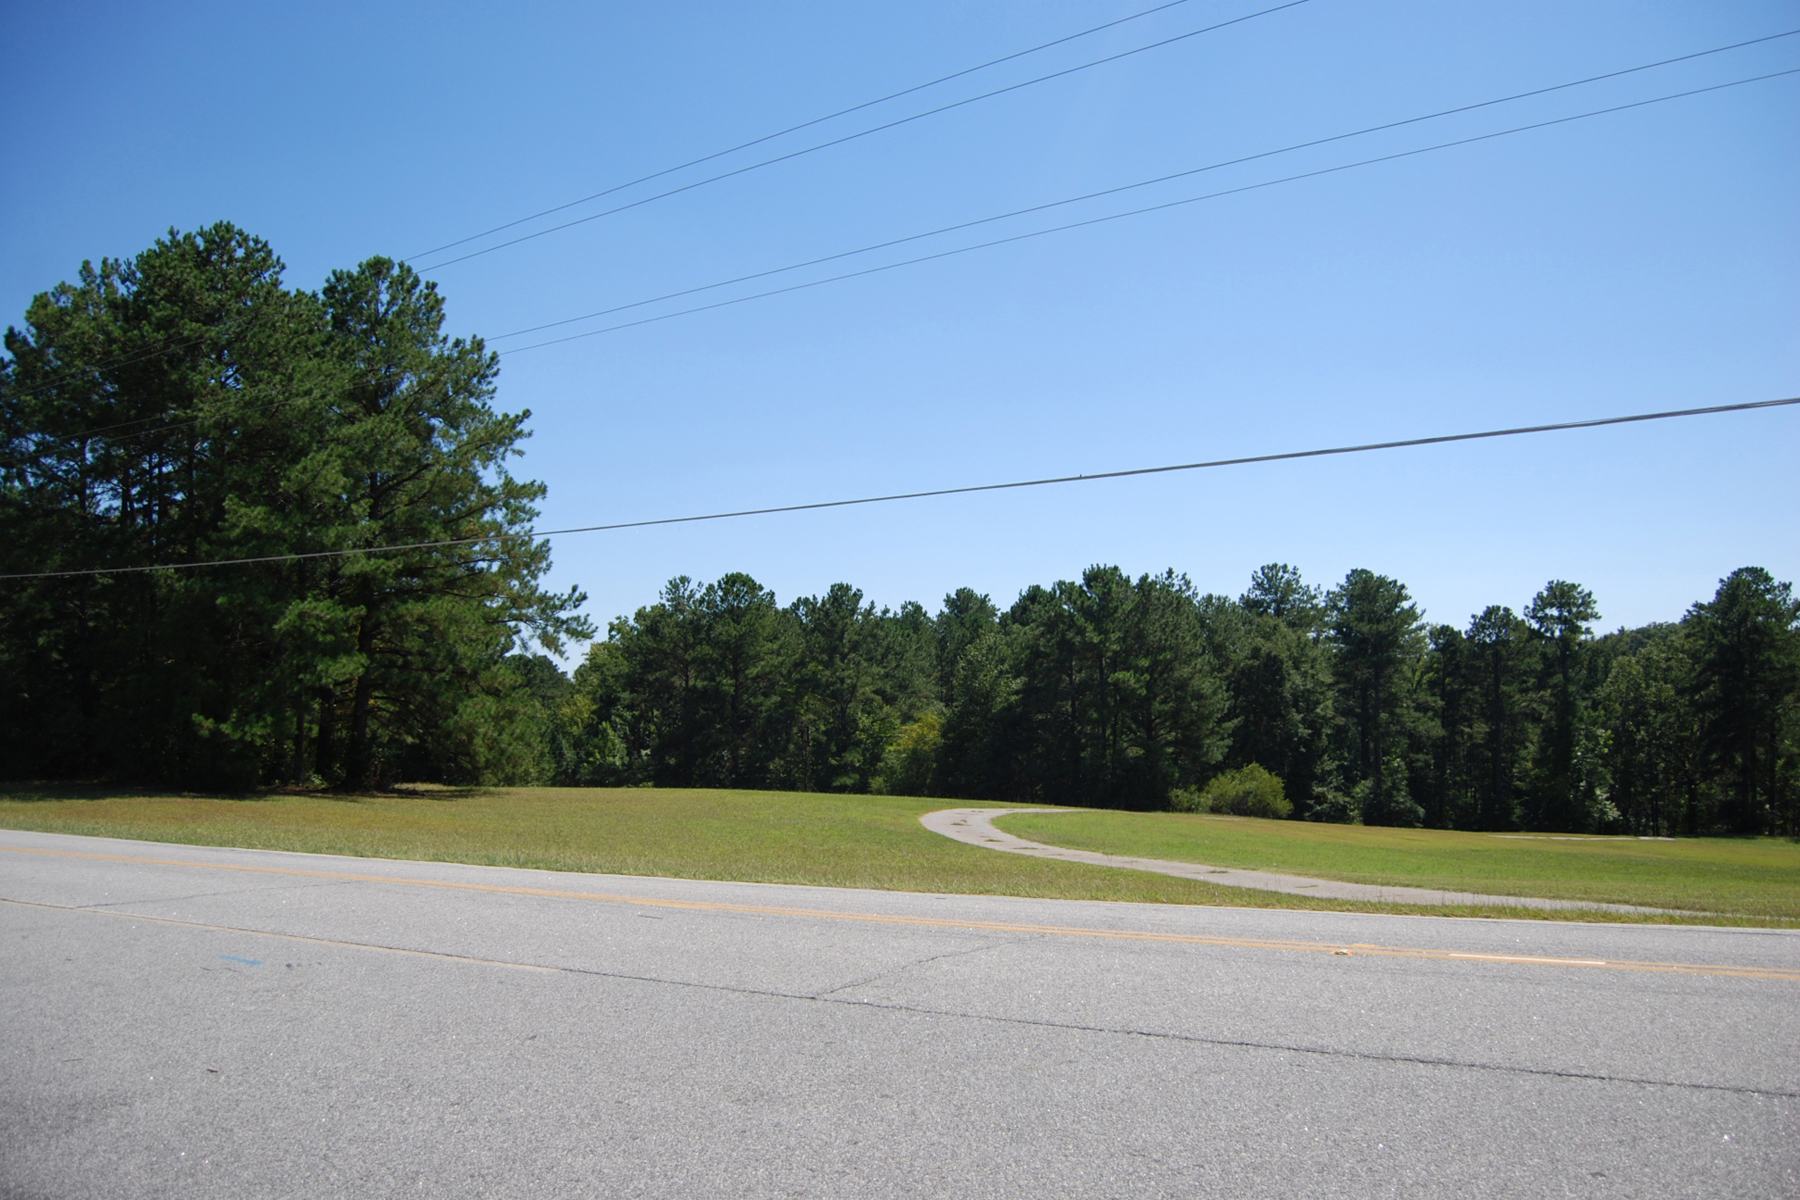 Land for Sale at Prime Location - 40.6+/- Acres Across From Piedmont Fayette Hospital 0 Highway 54 W Fayetteville, Georgia 30215 United States